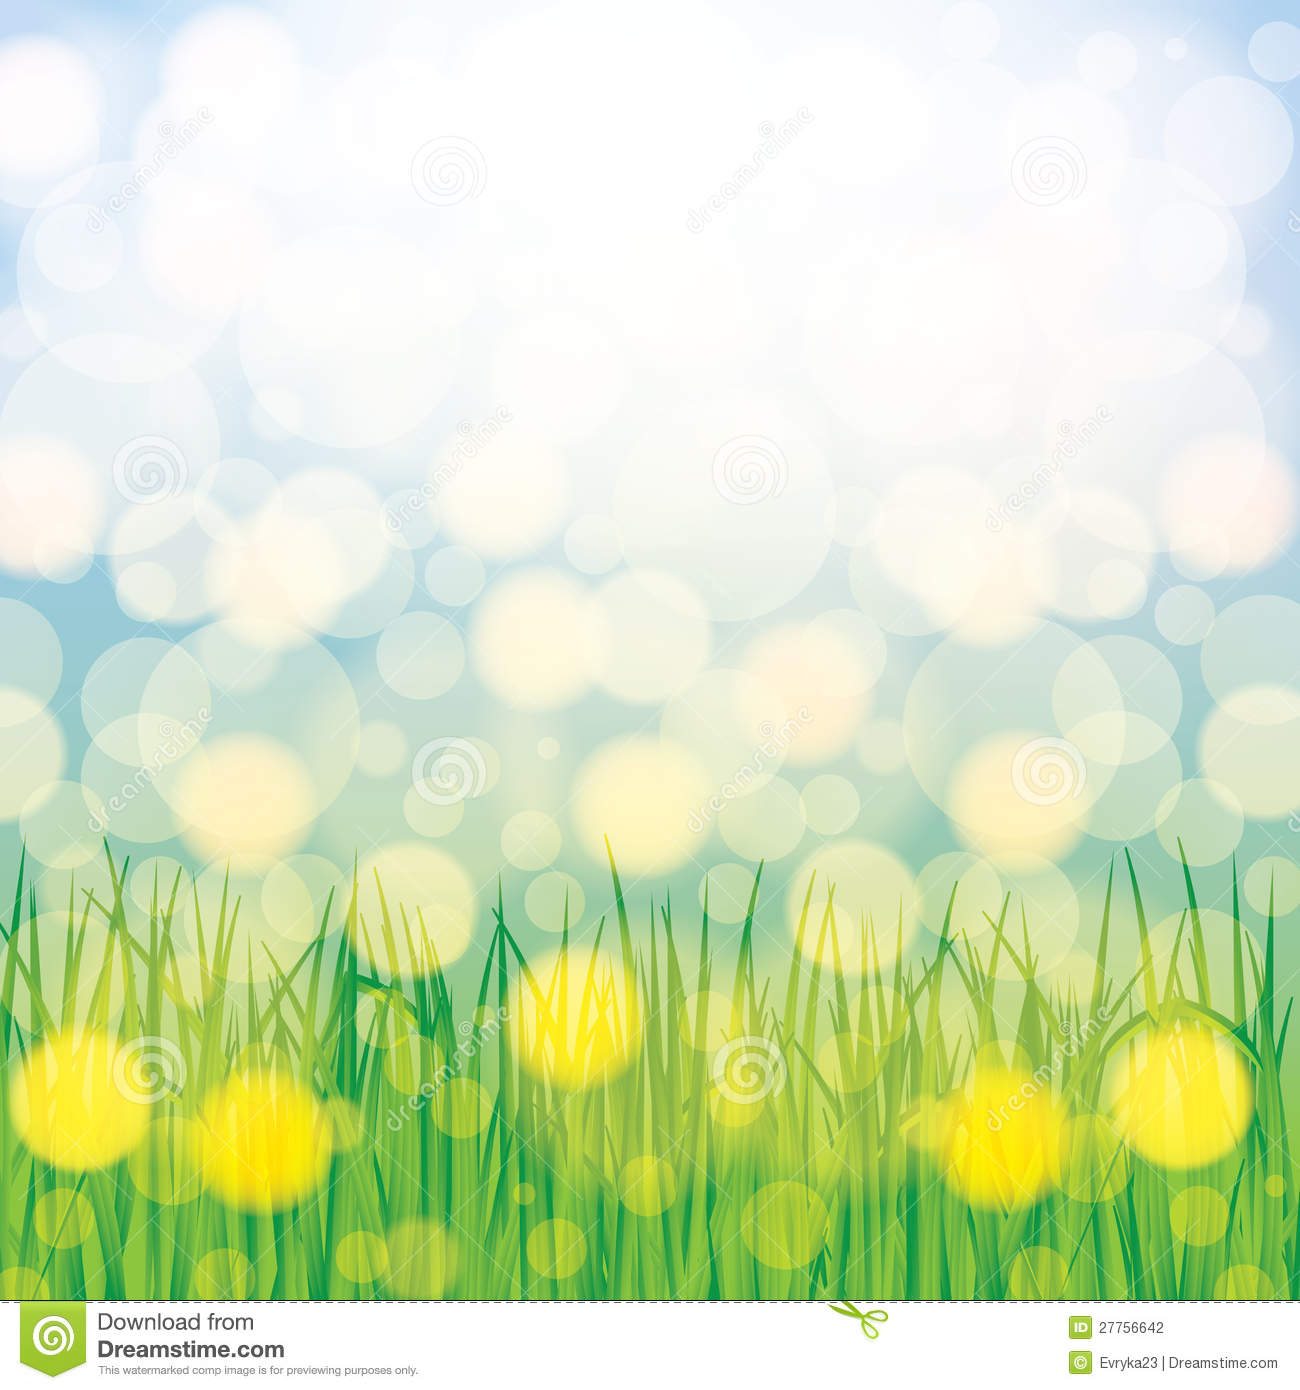 spring abstract background - photo #16